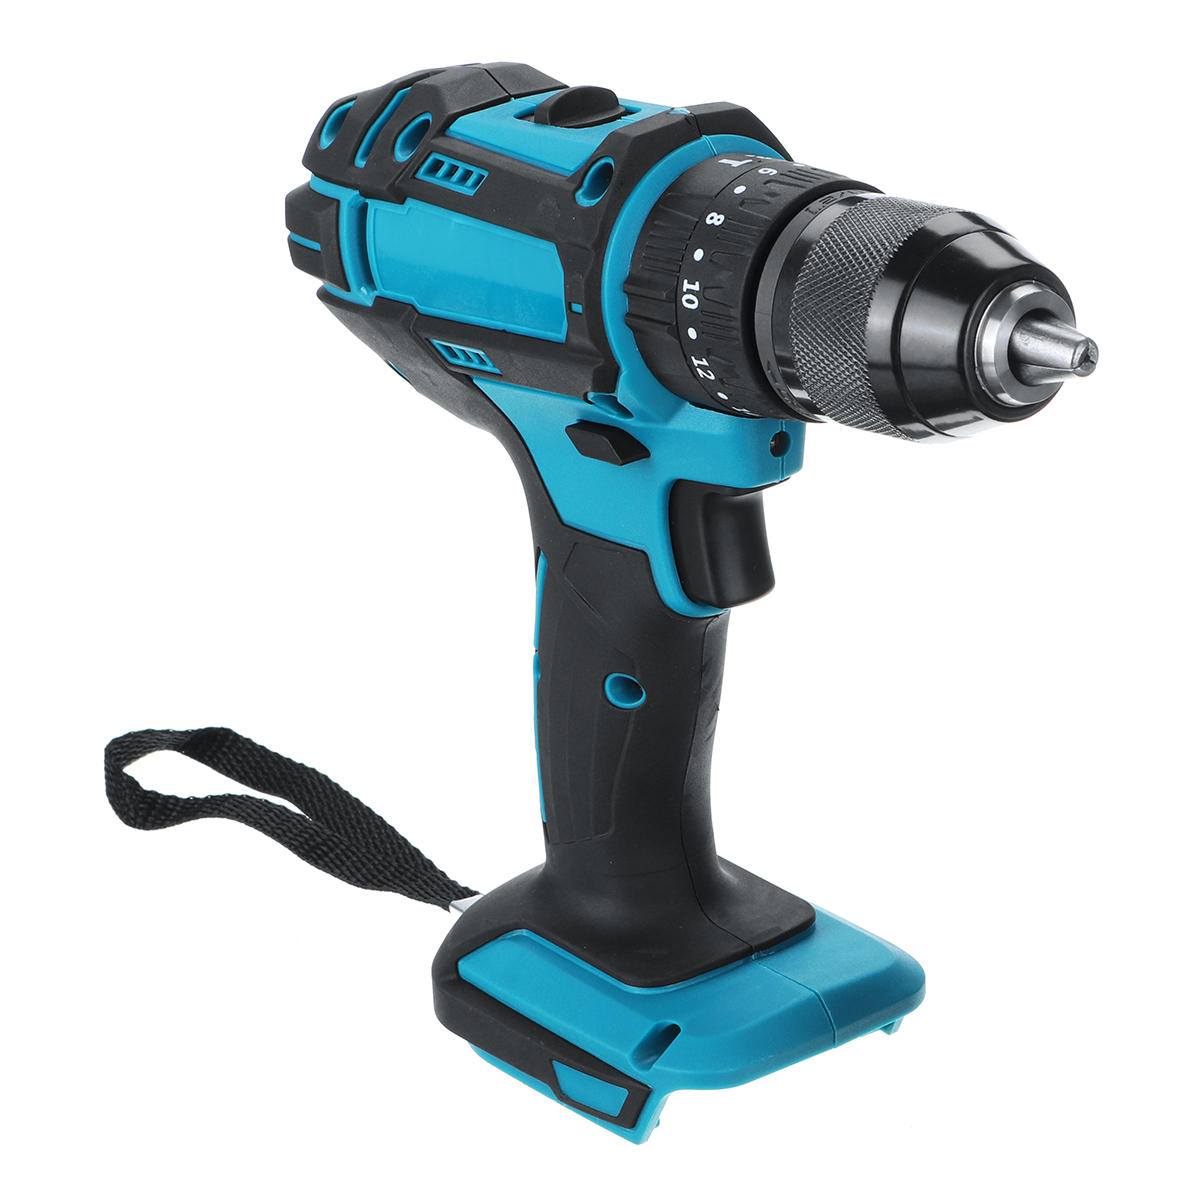 10mm Chuck Brushless Impact Drill 350N.m Cordless Electric Drill For Makita 18V Battery 4000RPM LED Light Power Drills - 6